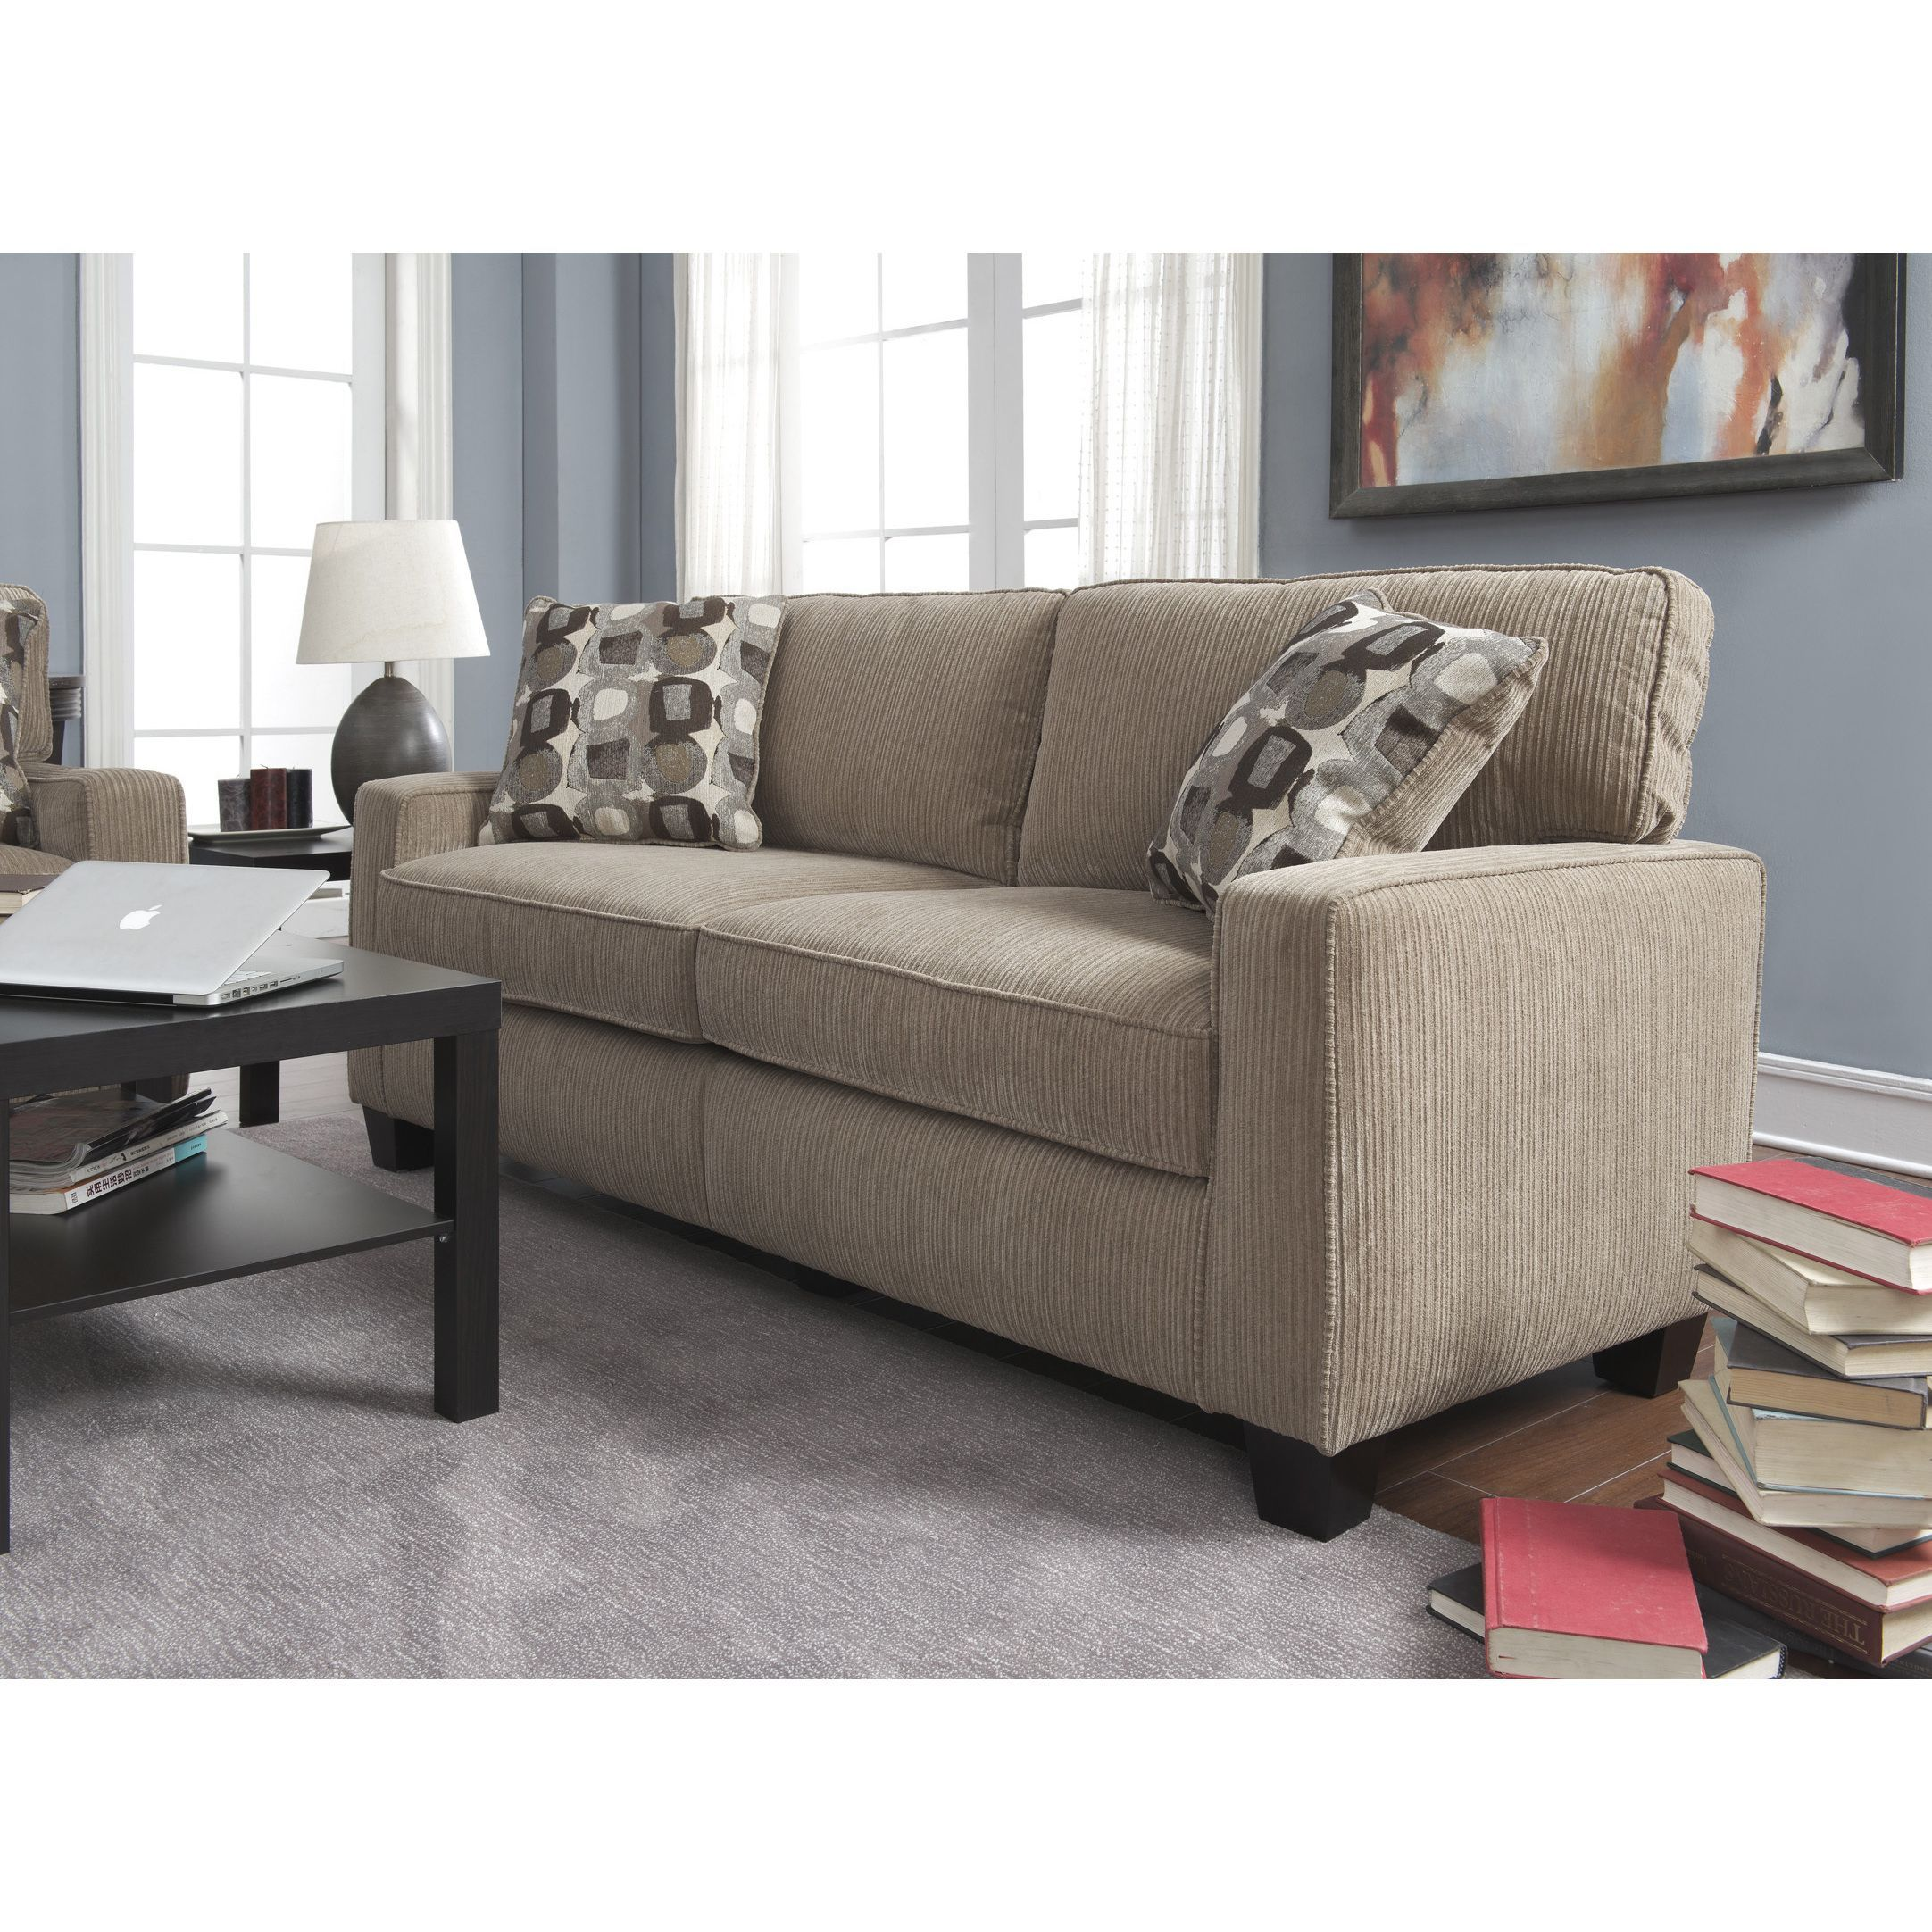 Charming Sit Back And Relax In The Ultra Comfortable Santa Cruz Sofa From Serta,  Constructed